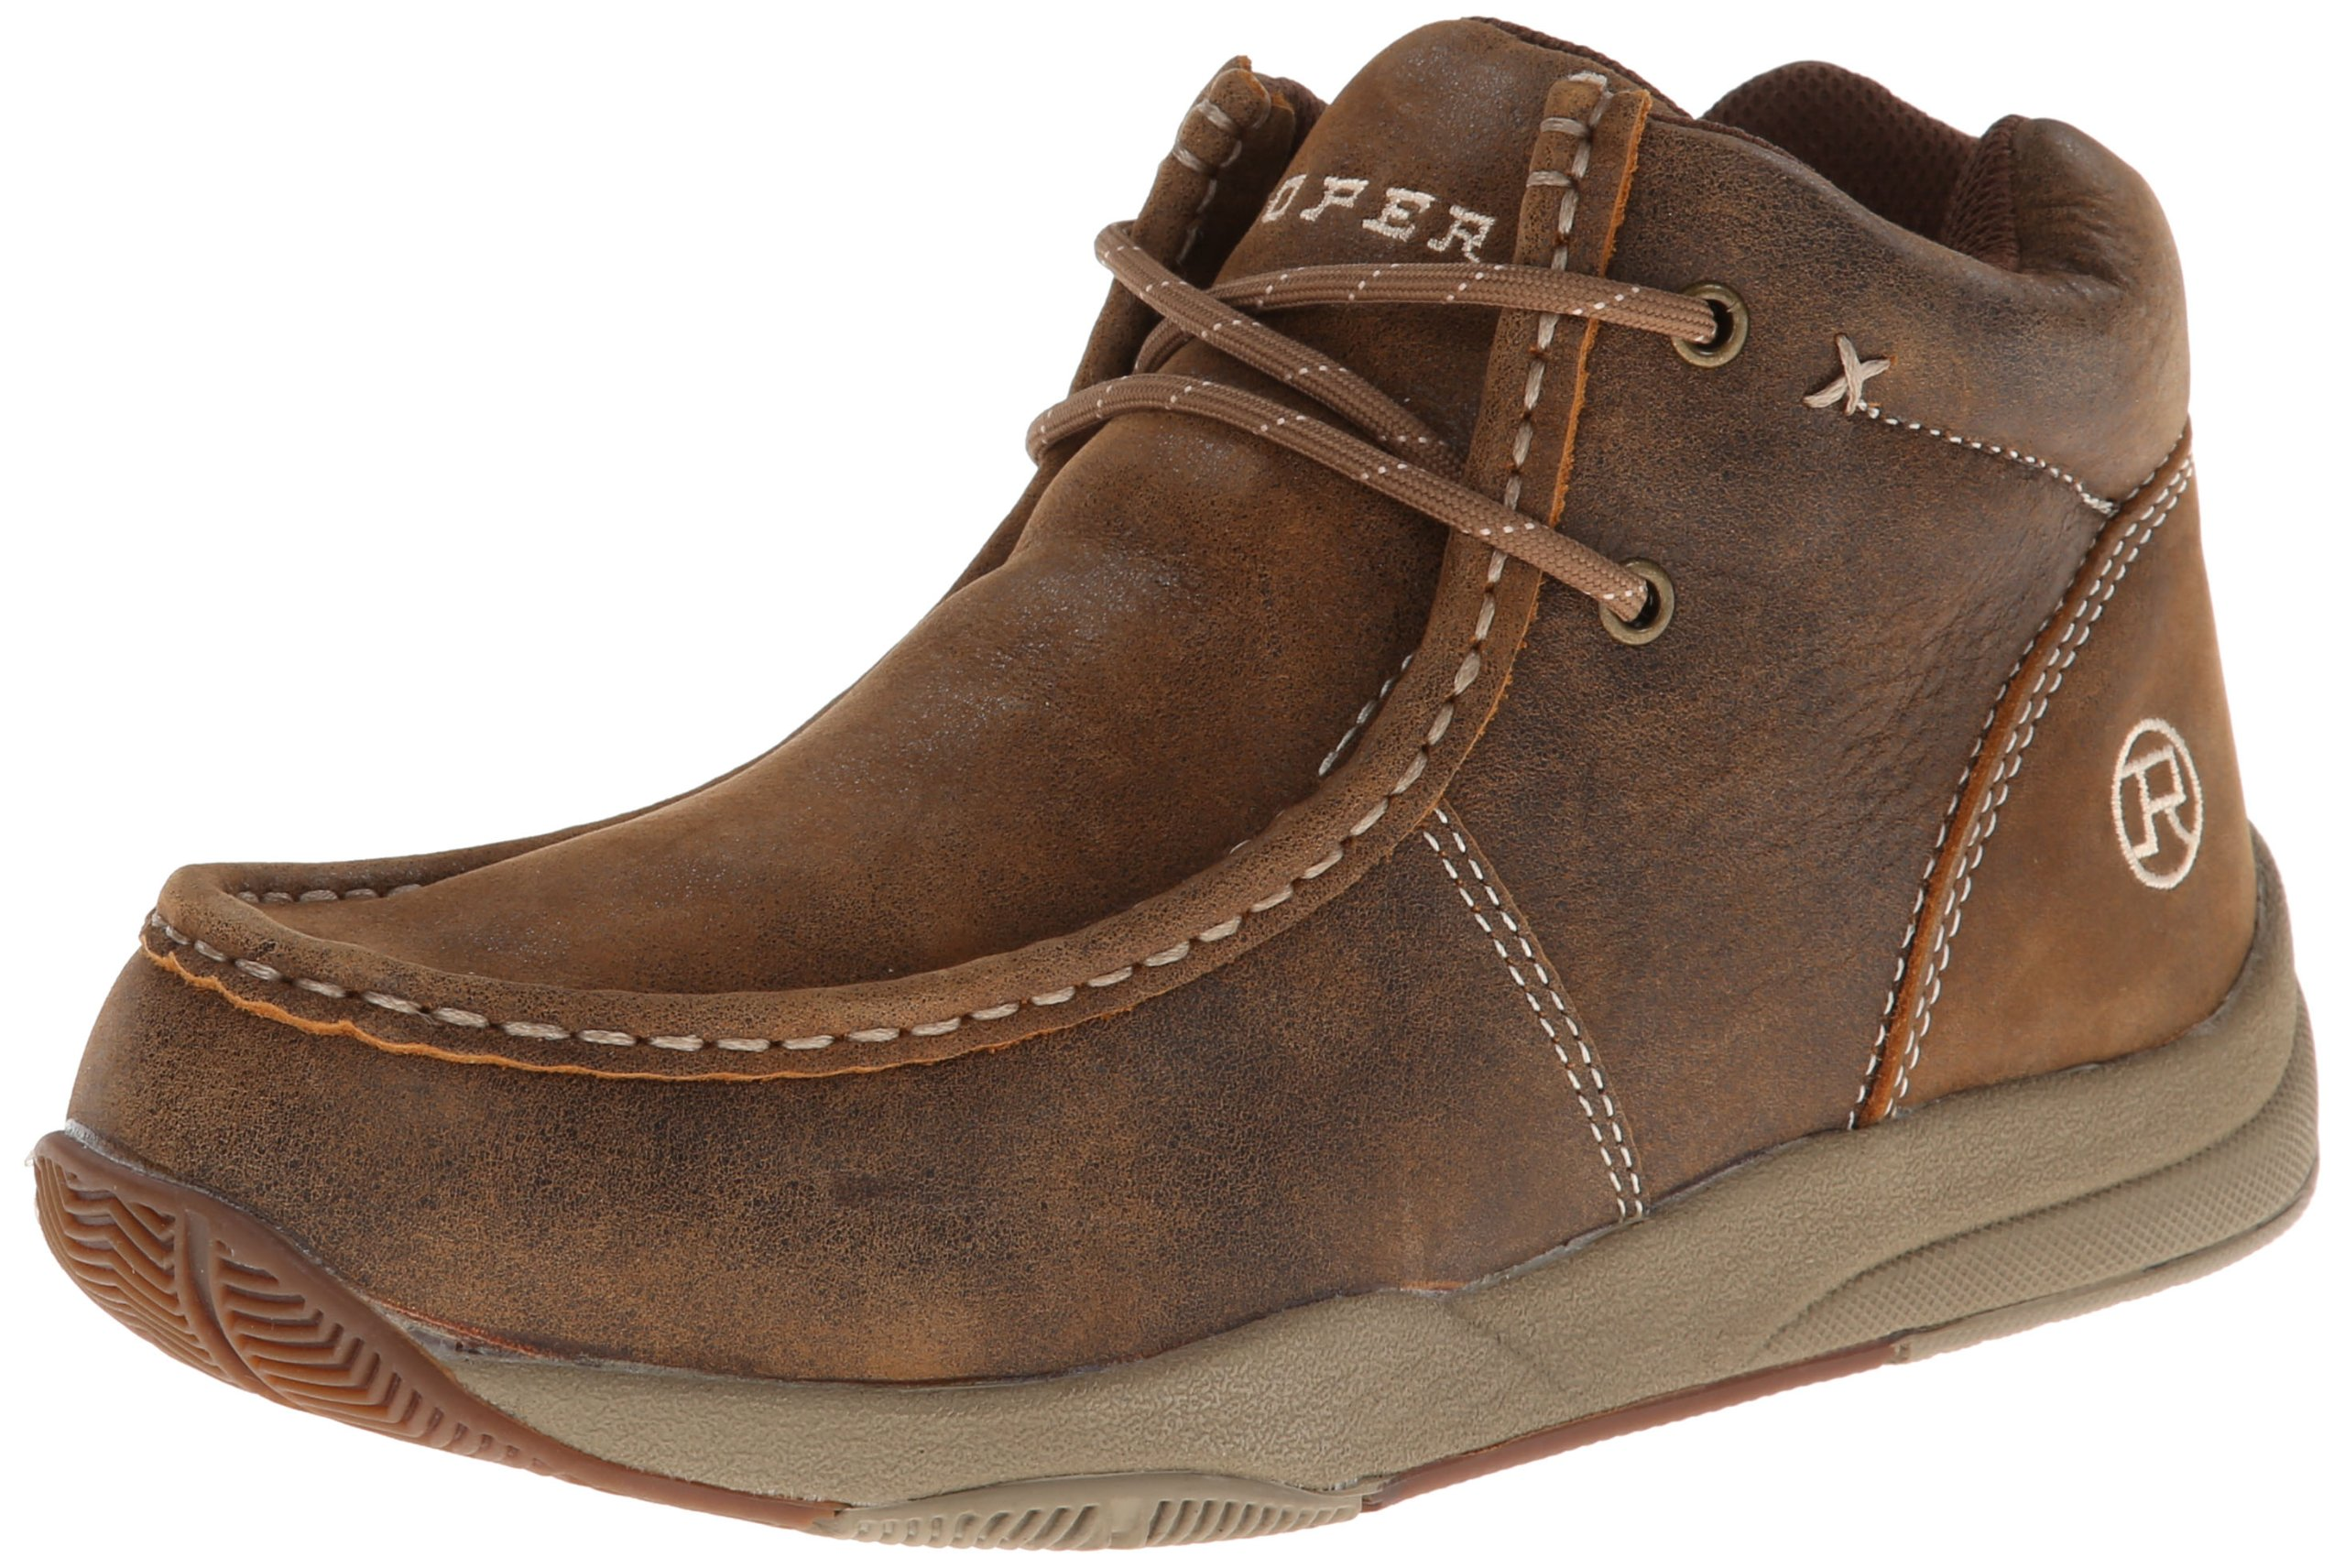 Roper Men's Boat Chukka Boot,Tan,9.5 M US